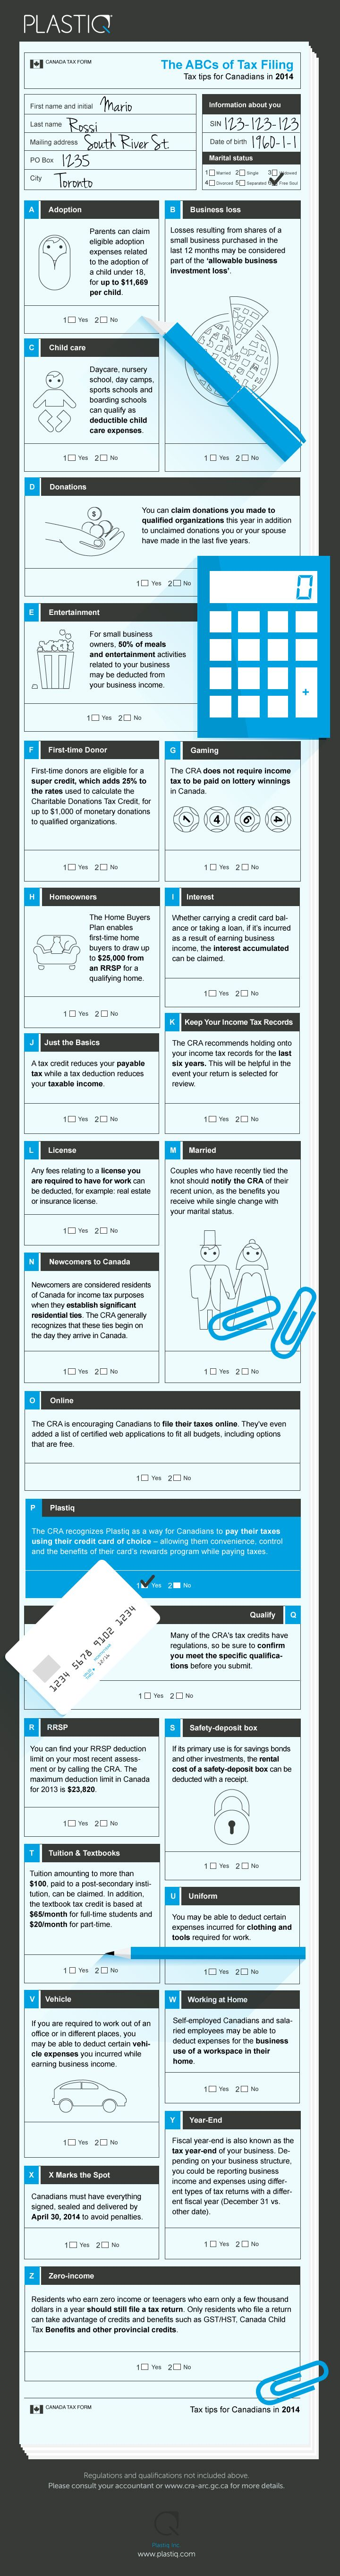 34 best Mentorship images on Pinterest | Business coaching, Same day ...